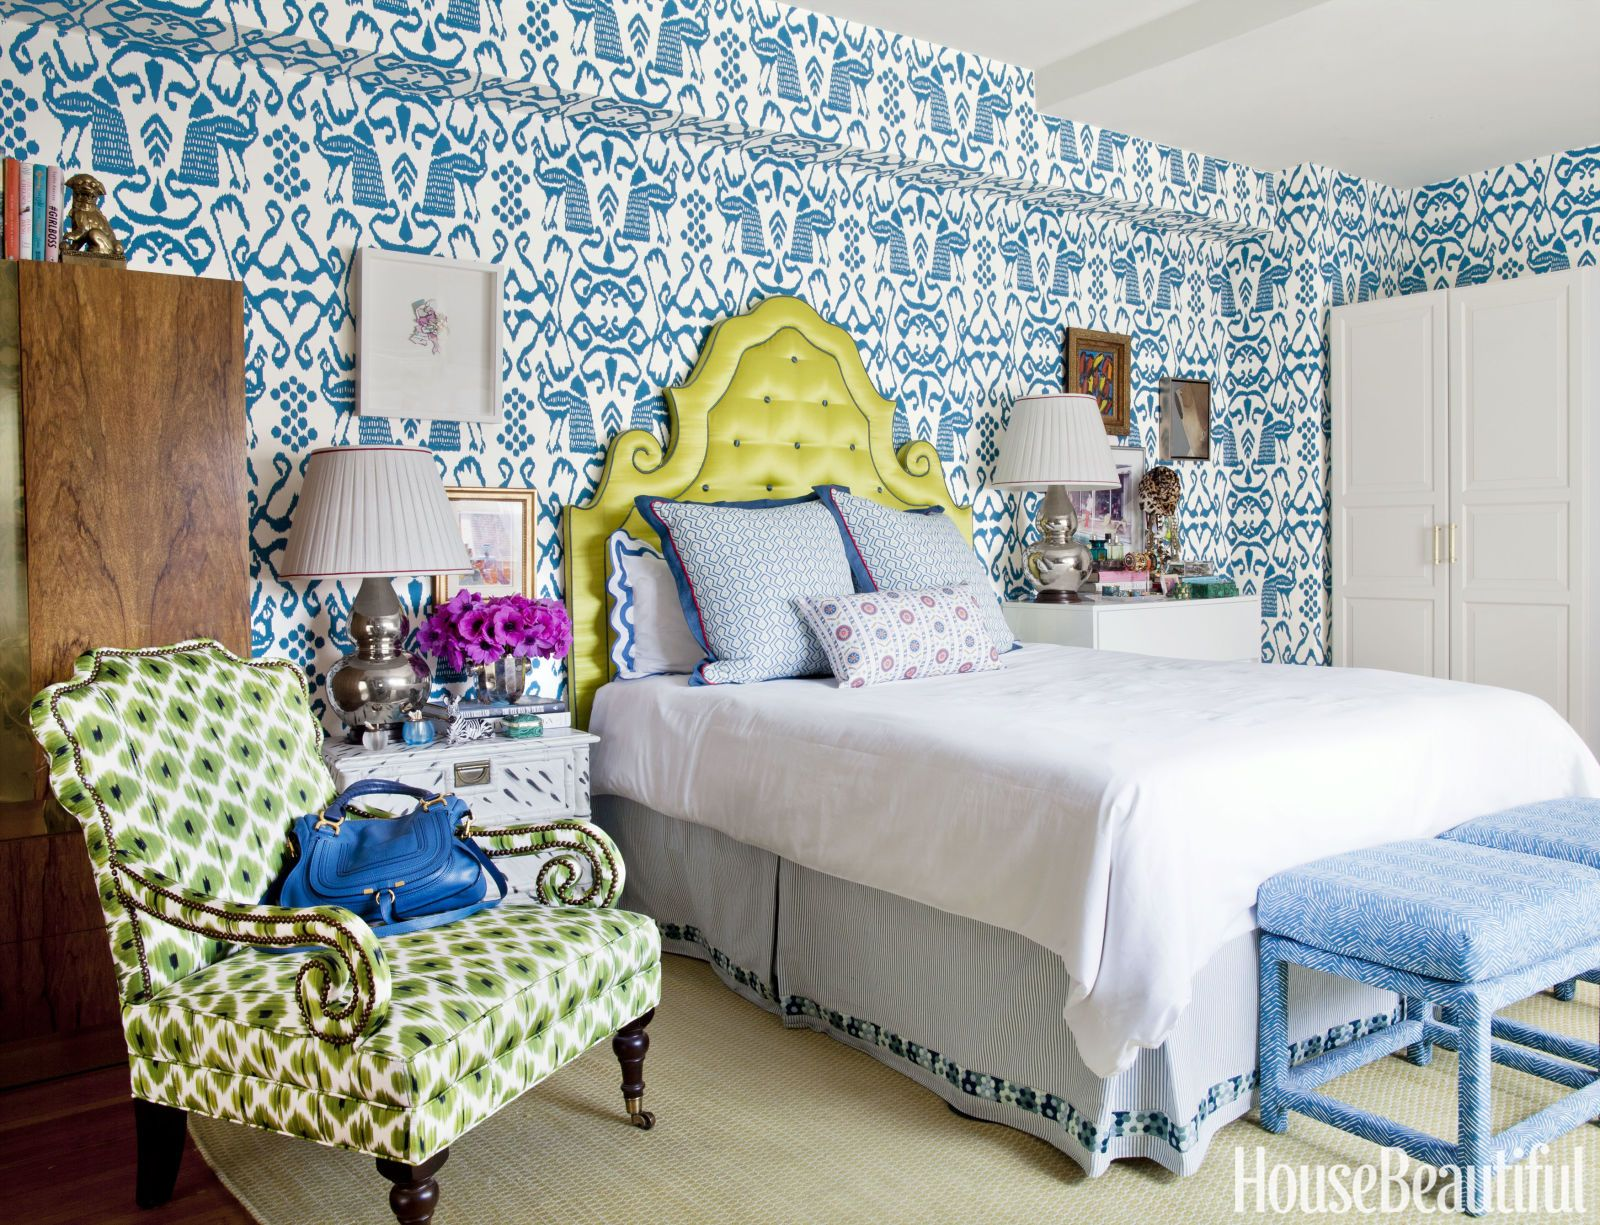 62 Colorful Bedrooms That Will Make You Wake Up Happier